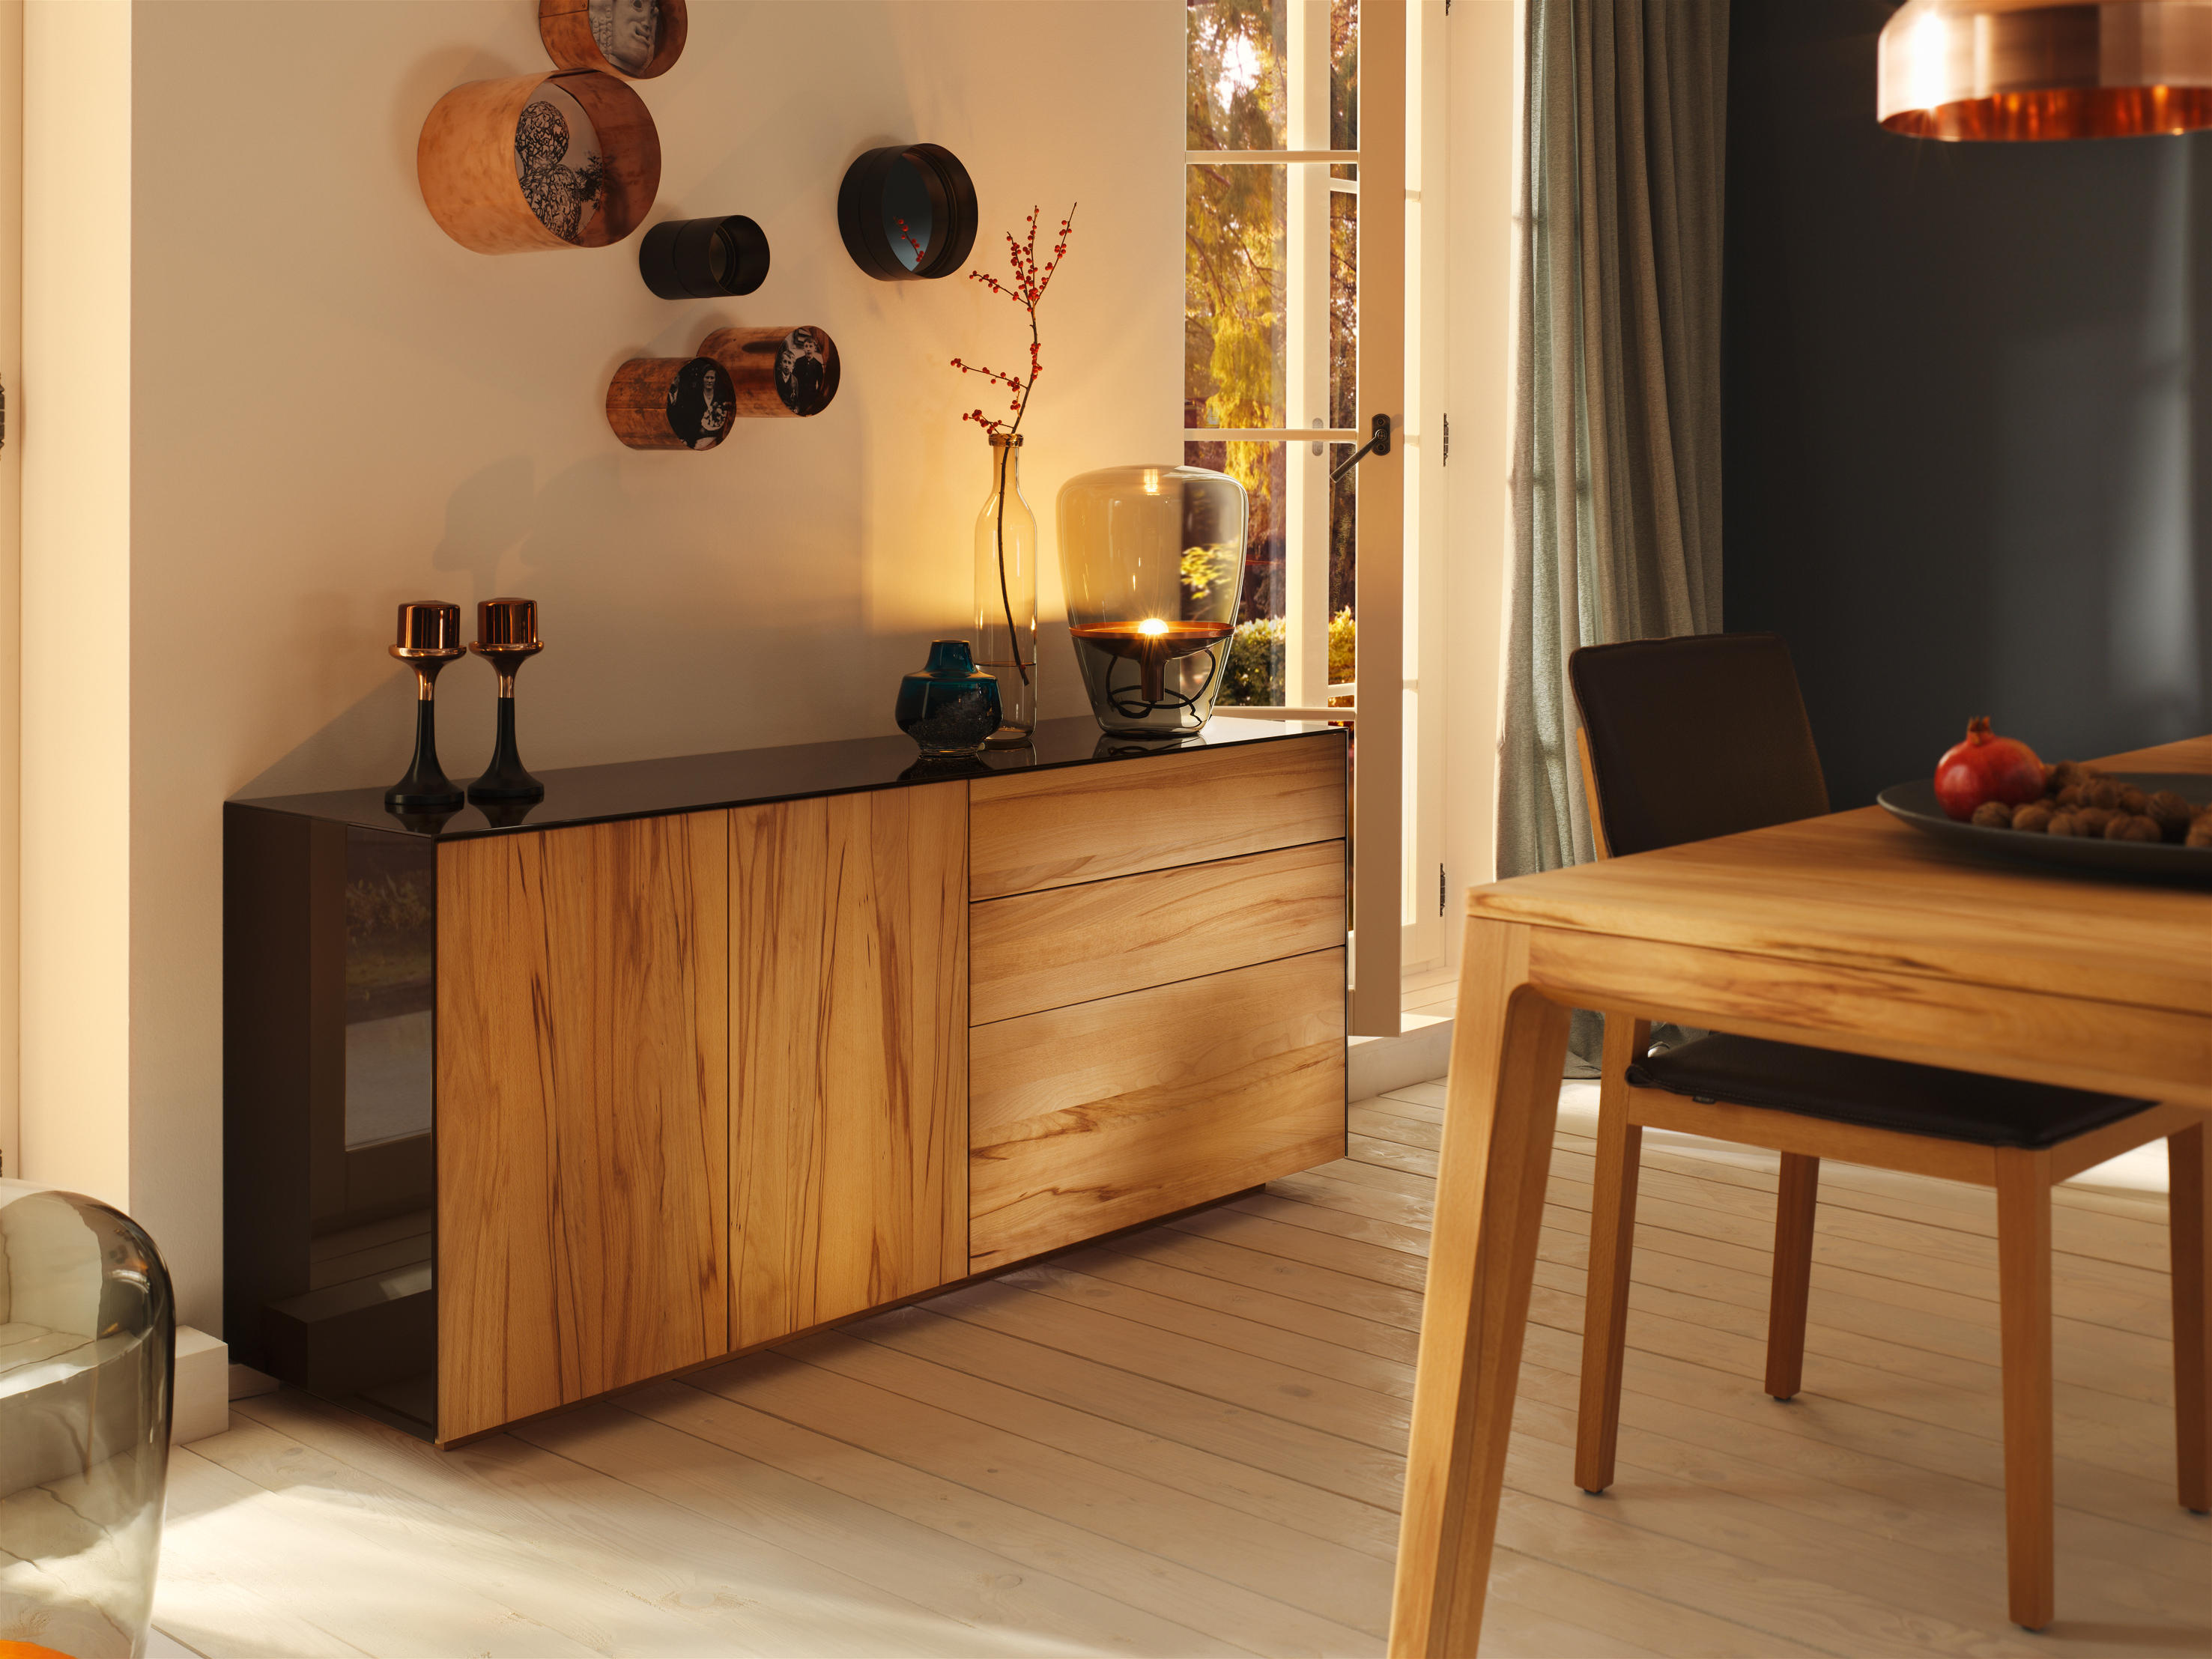 CUBUS PURE SIDEBOARD - Sideboards From TEAM 7